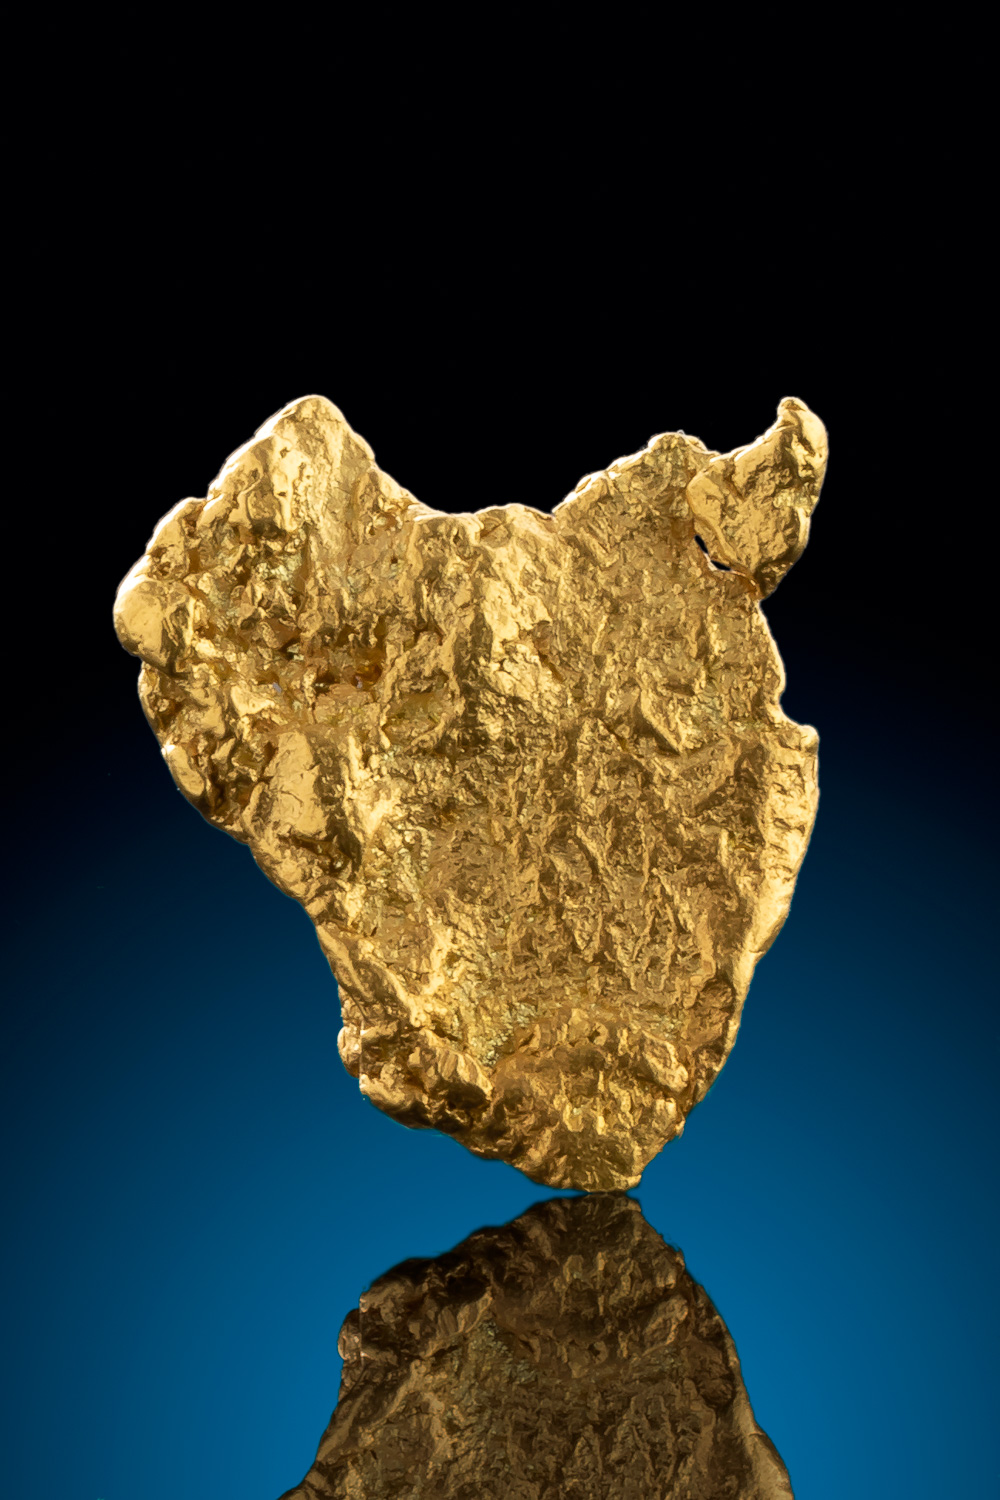 Brilliant Triangular Natural gold Nugget from Alaska